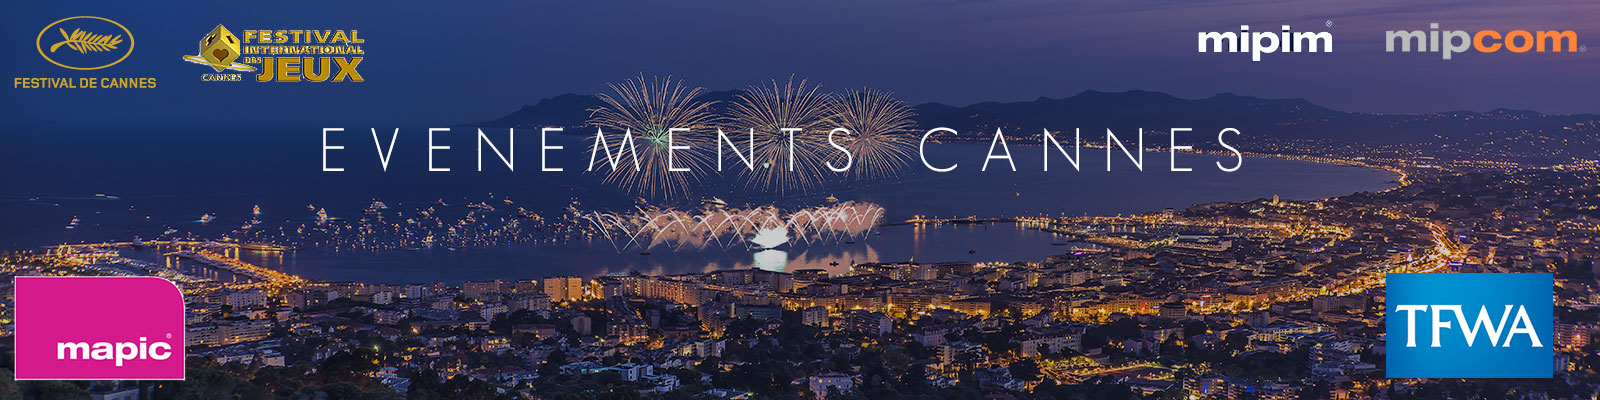 evenements cannes